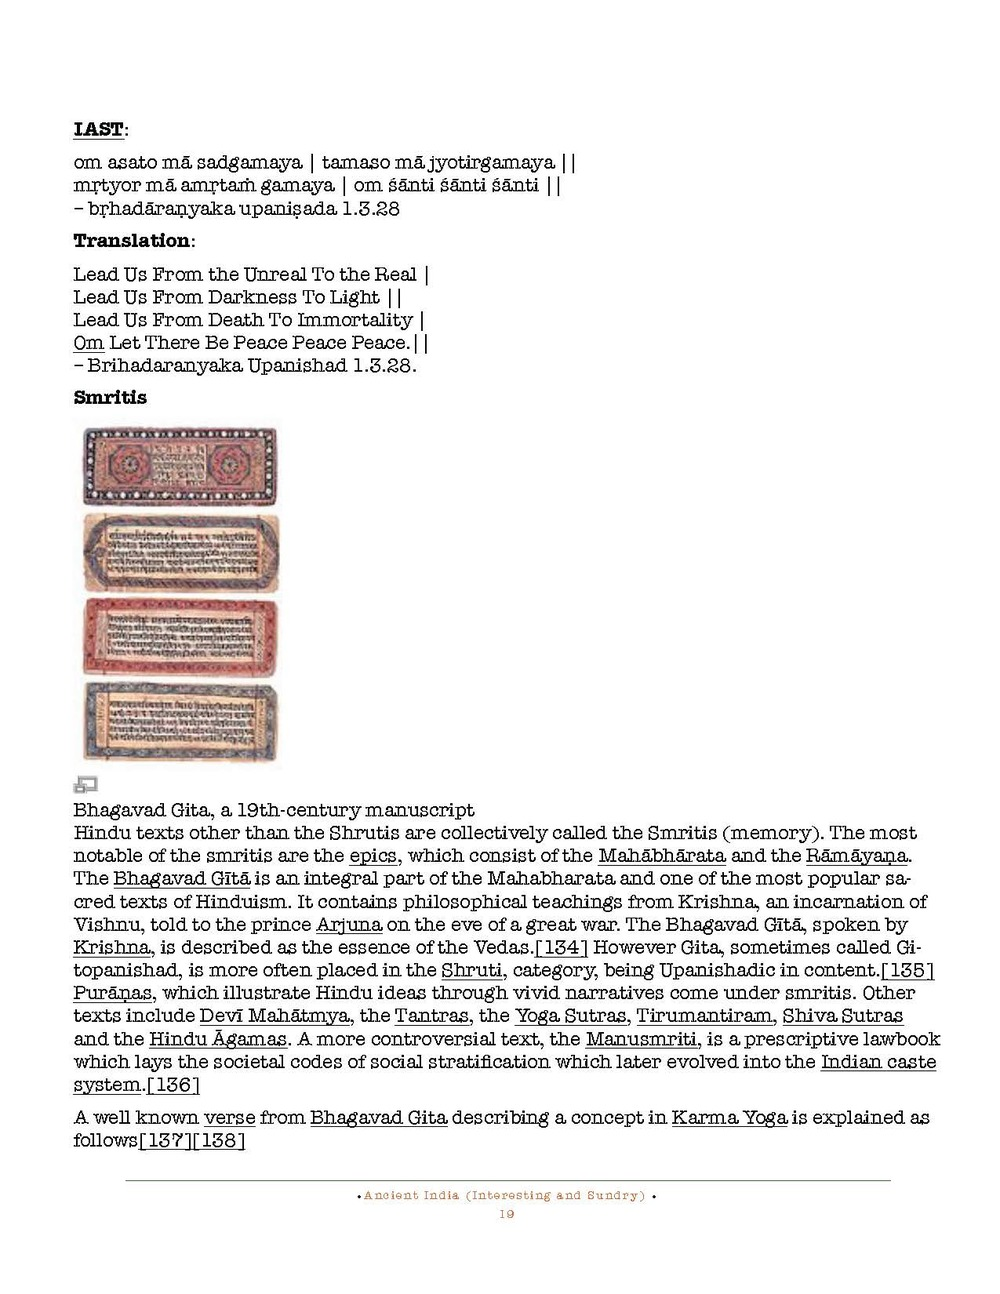 HOCE- Ancient India Notes (Other Interesting and Sundry)_Page_019.jpg